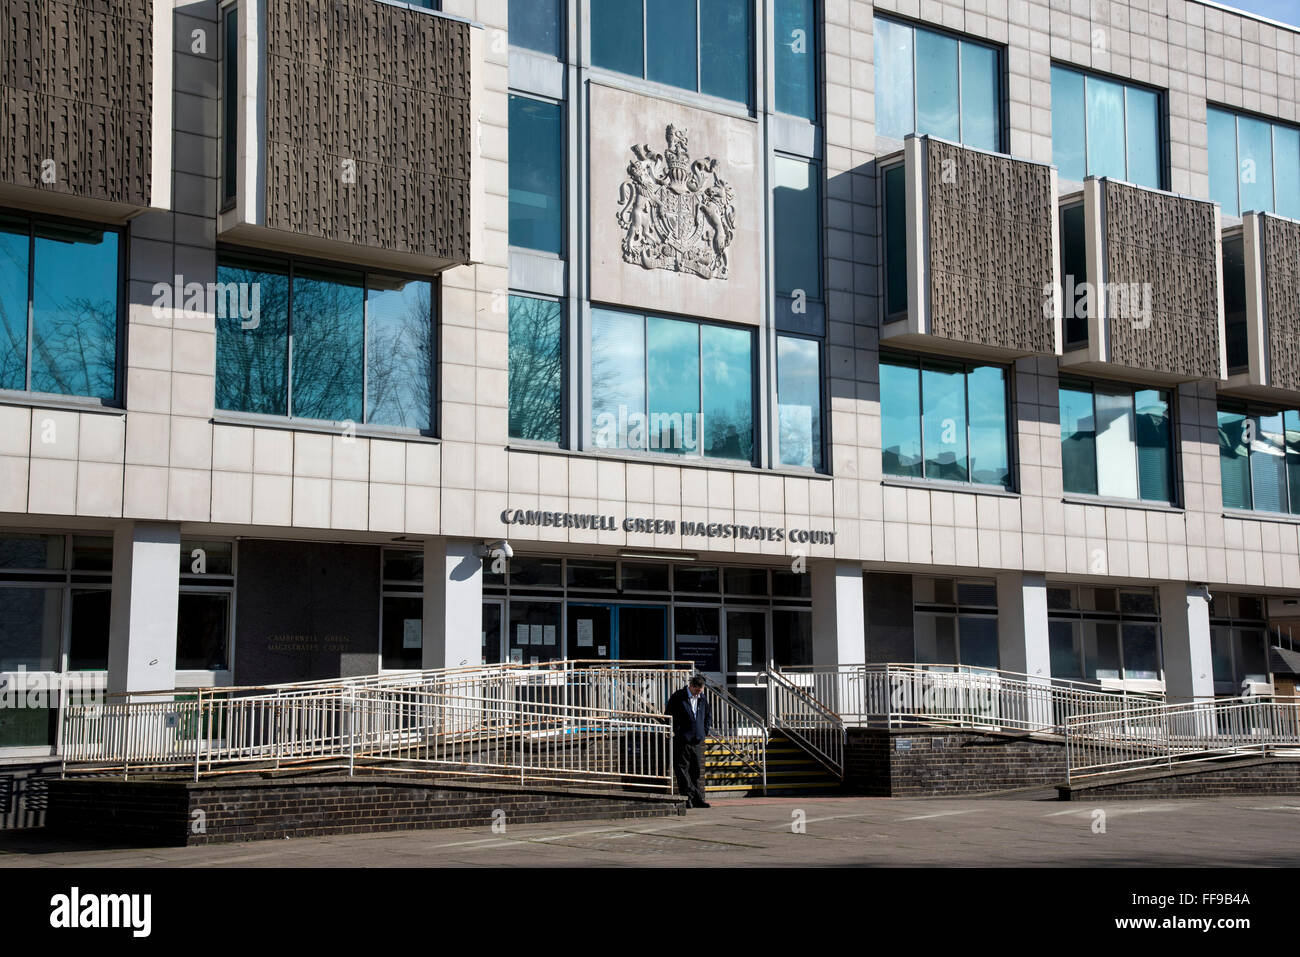 Camberwell Green Magistrates Court GV entrance - Stock Image